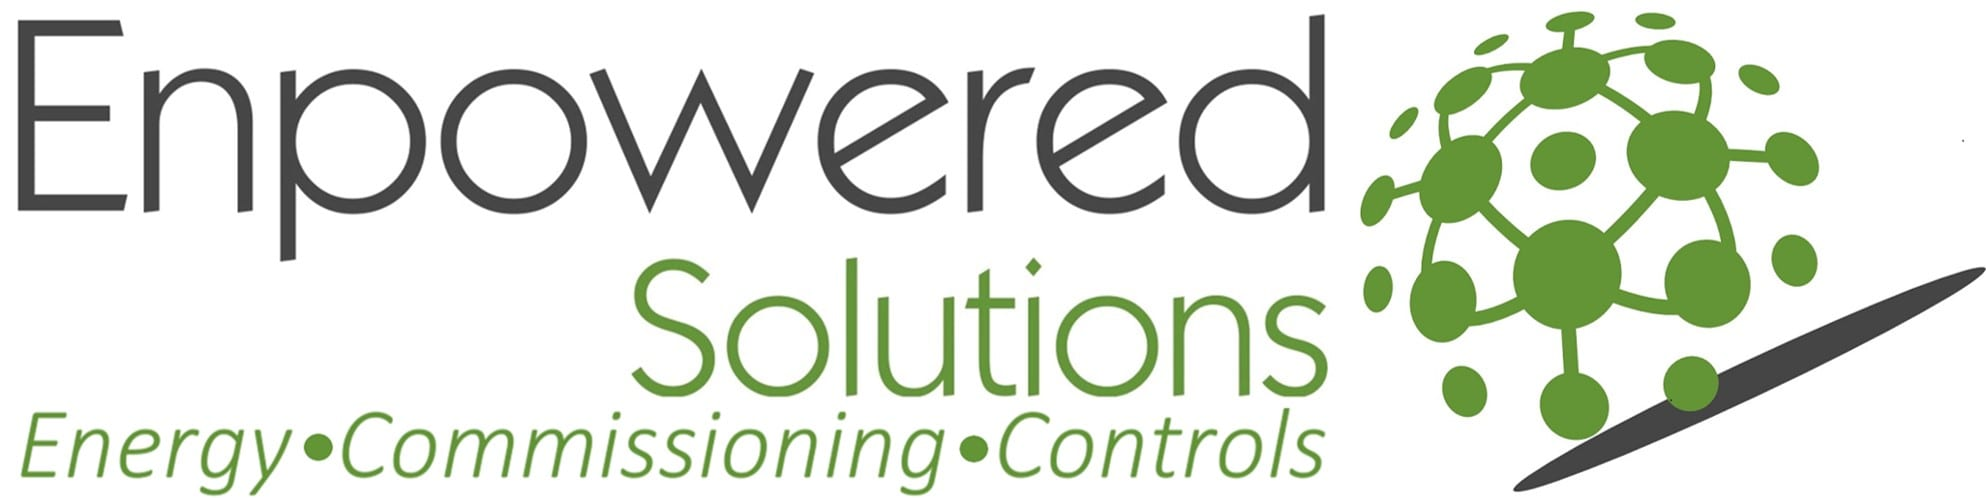 Enpowered Solutions: Energy, Commissioning, and Controls Experts